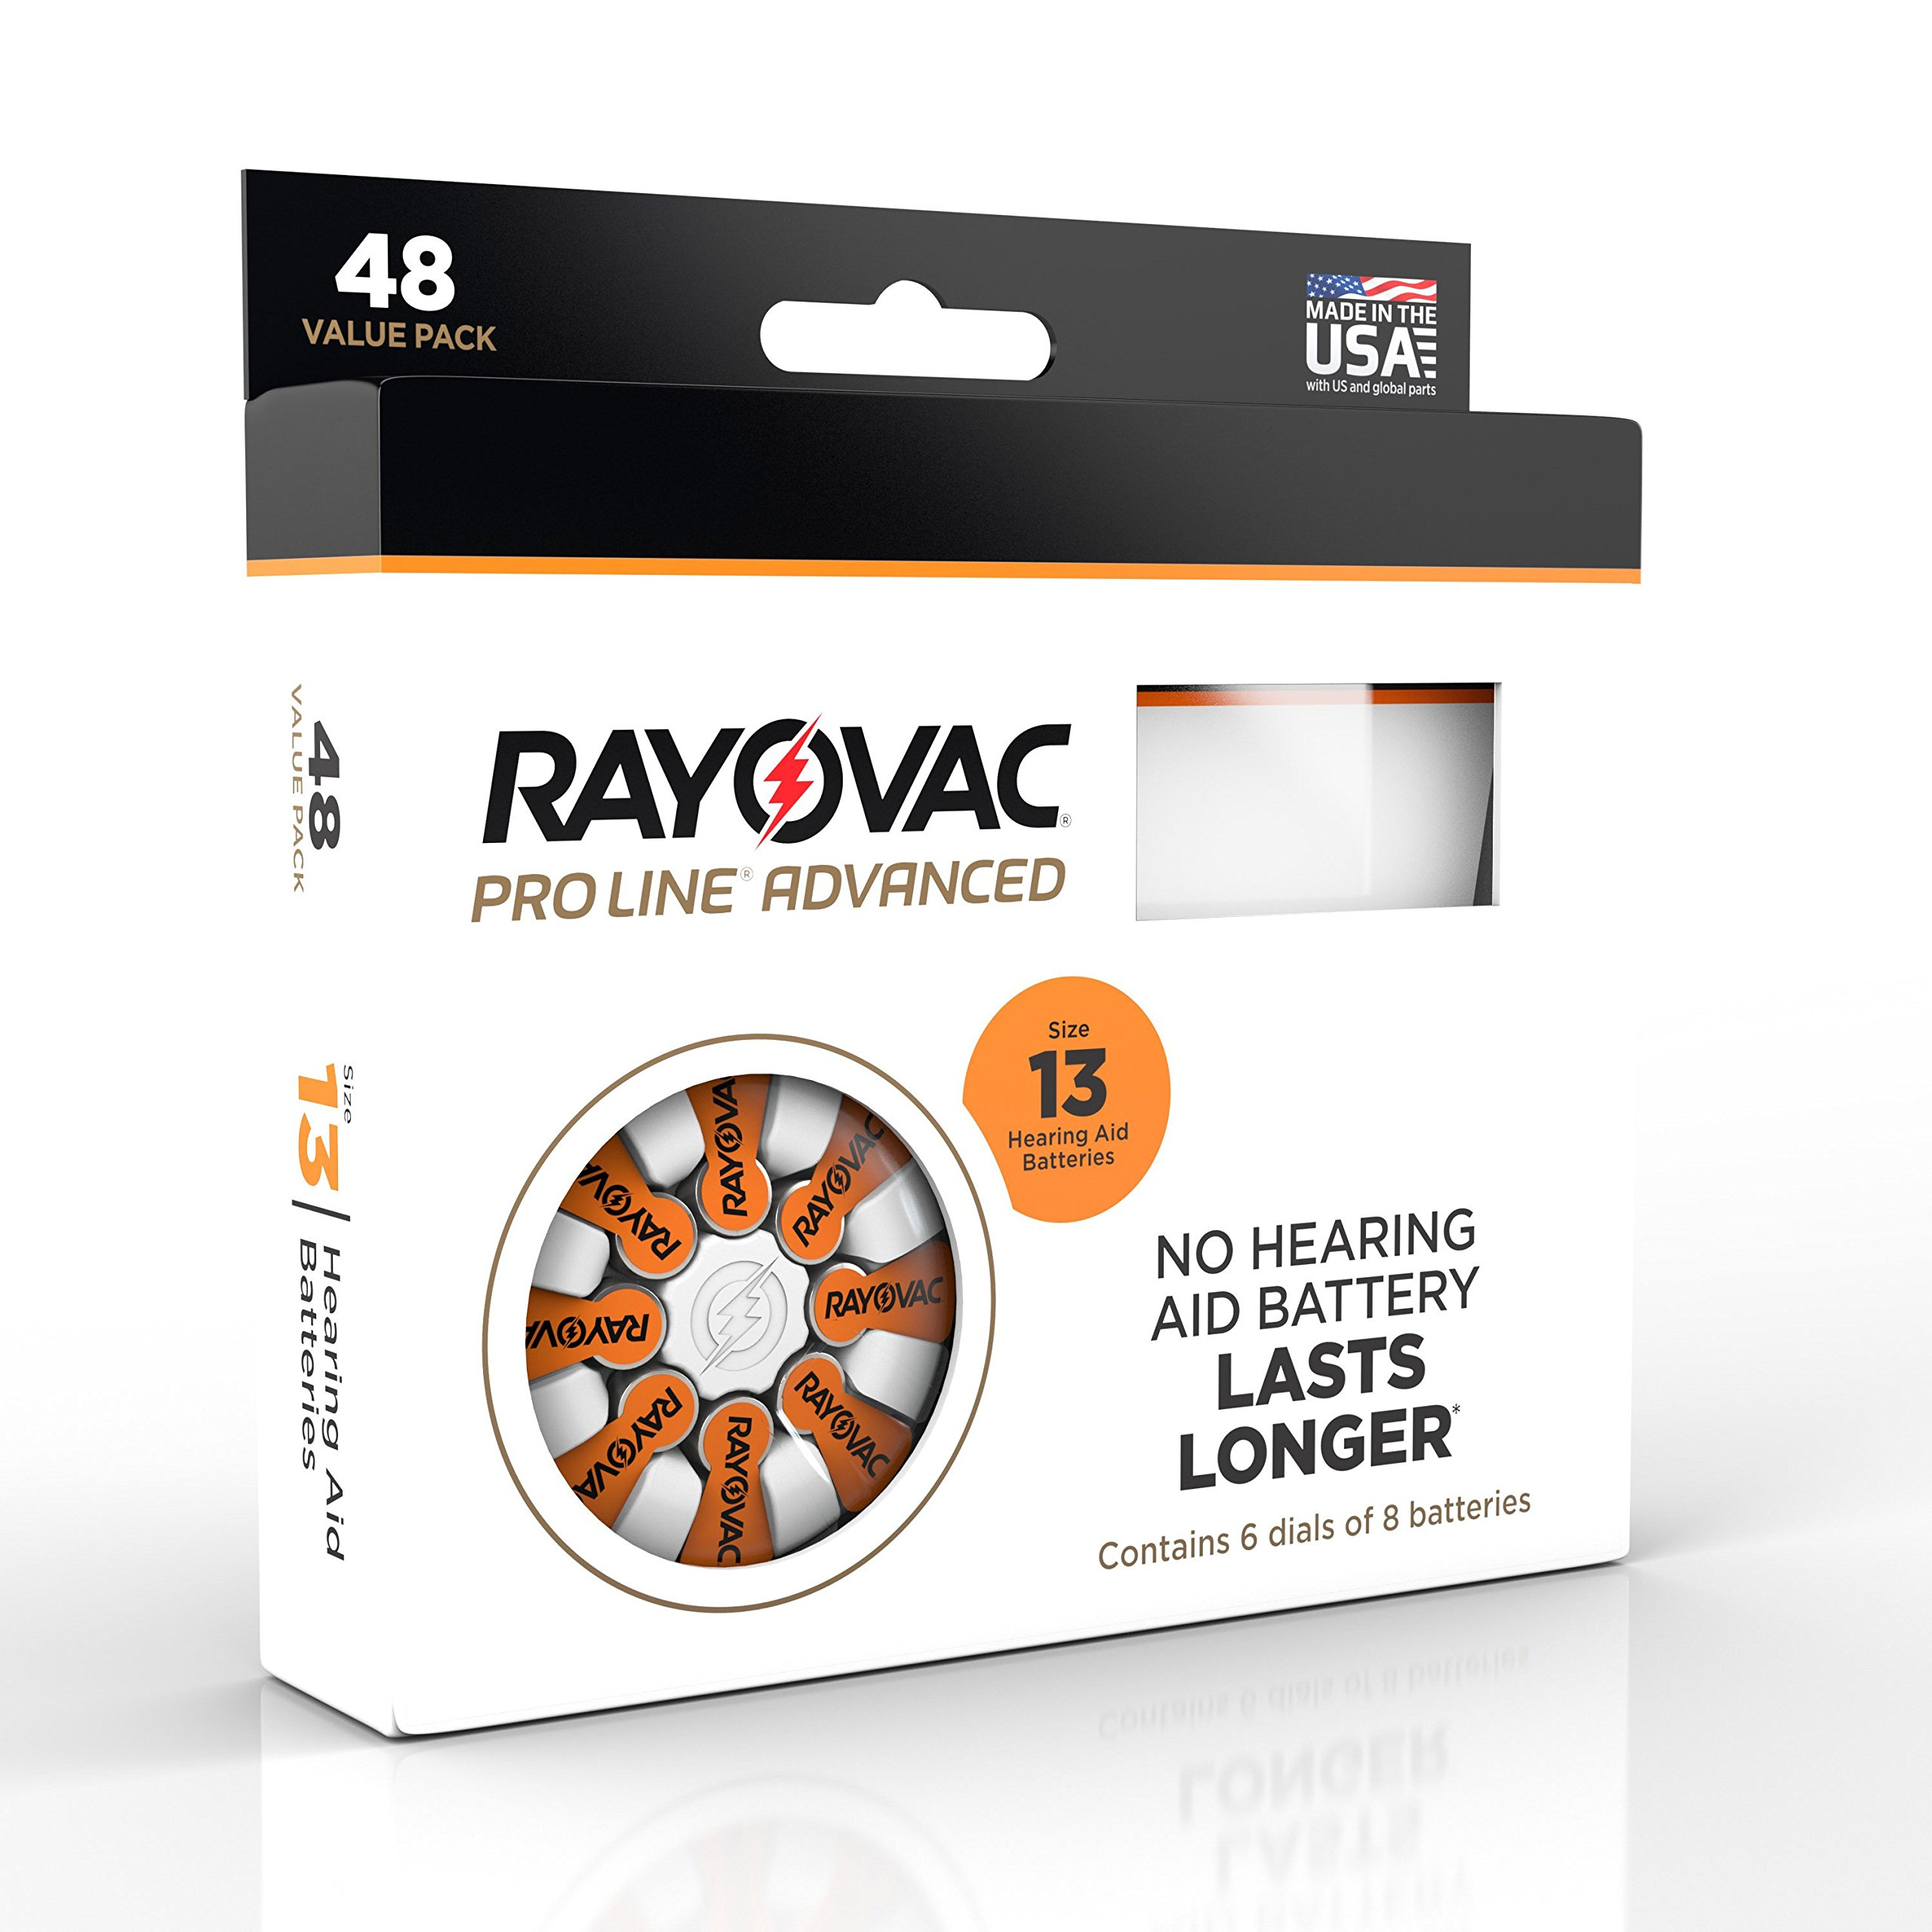 Rayovac Proline Advance Hearing Aid Batteries, Size 13A (48 count) by Rayovac Proline